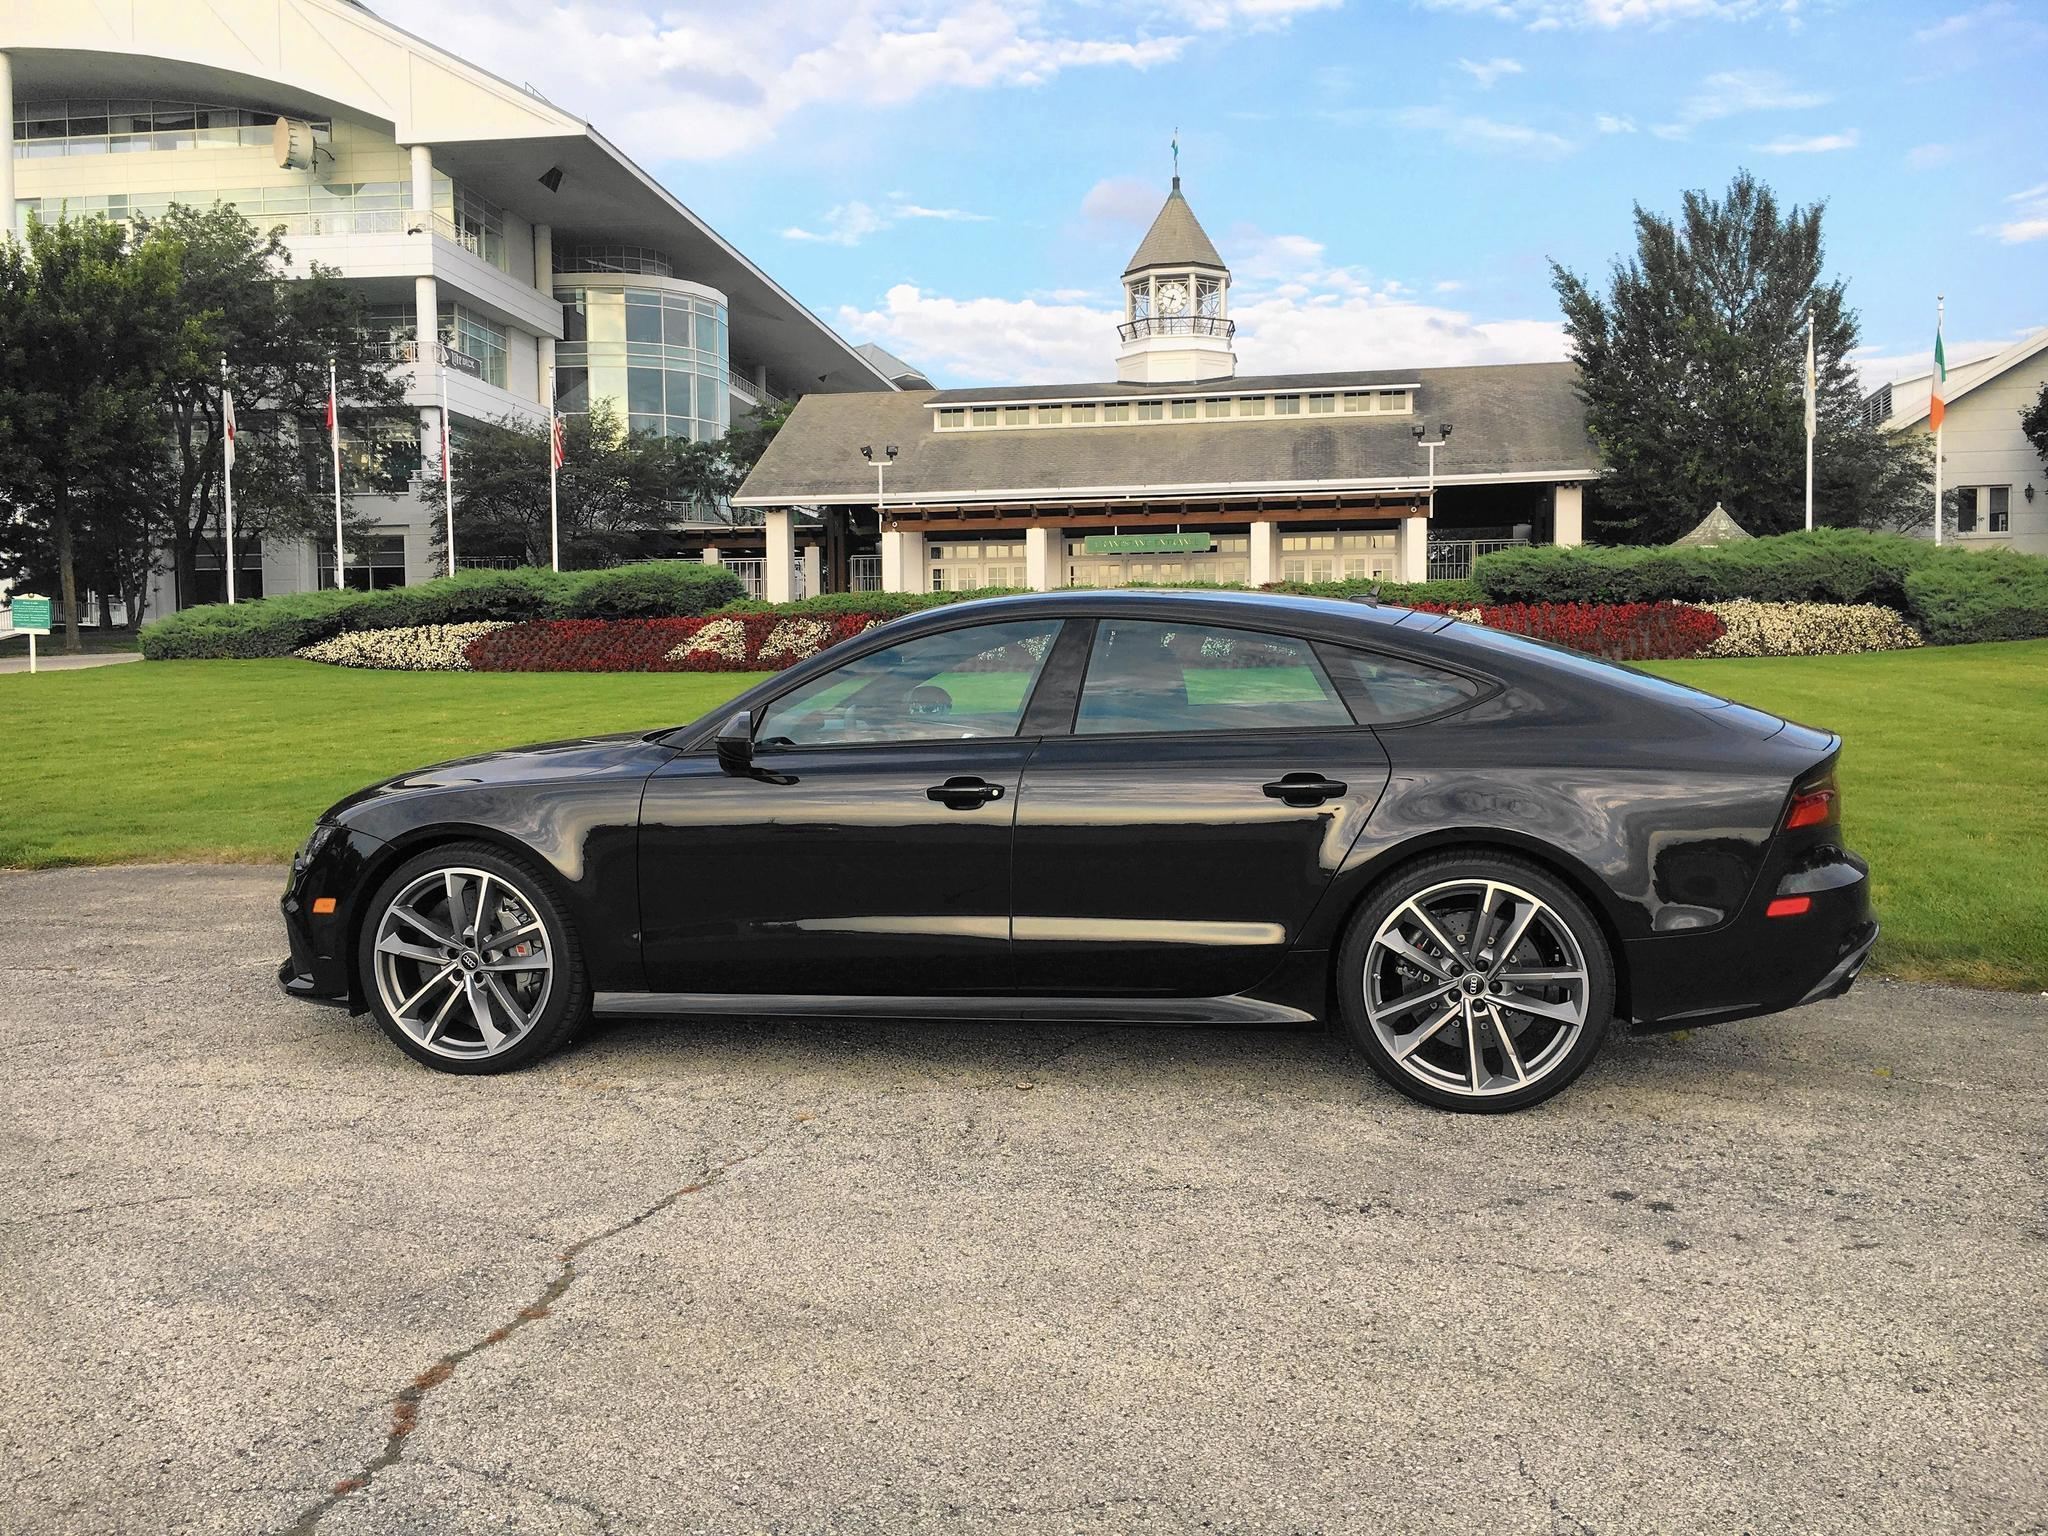 2017 audi rs 7 performance trim is overkill chicago tribune. Black Bedroom Furniture Sets. Home Design Ideas